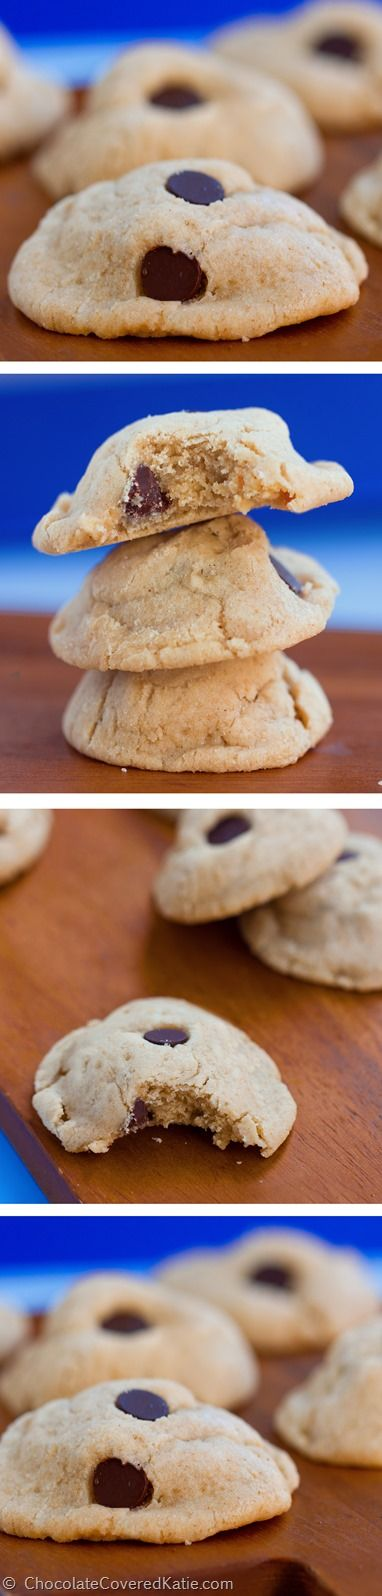 The lightest, softest, chewiest, most delicious cookies you will ever put in your mouth! (Yes, seriously) http://chocolatecoveredkatie.com/2015/02/10/chocolate-chip-cream-cheese-cookies/ @choccoveredkt